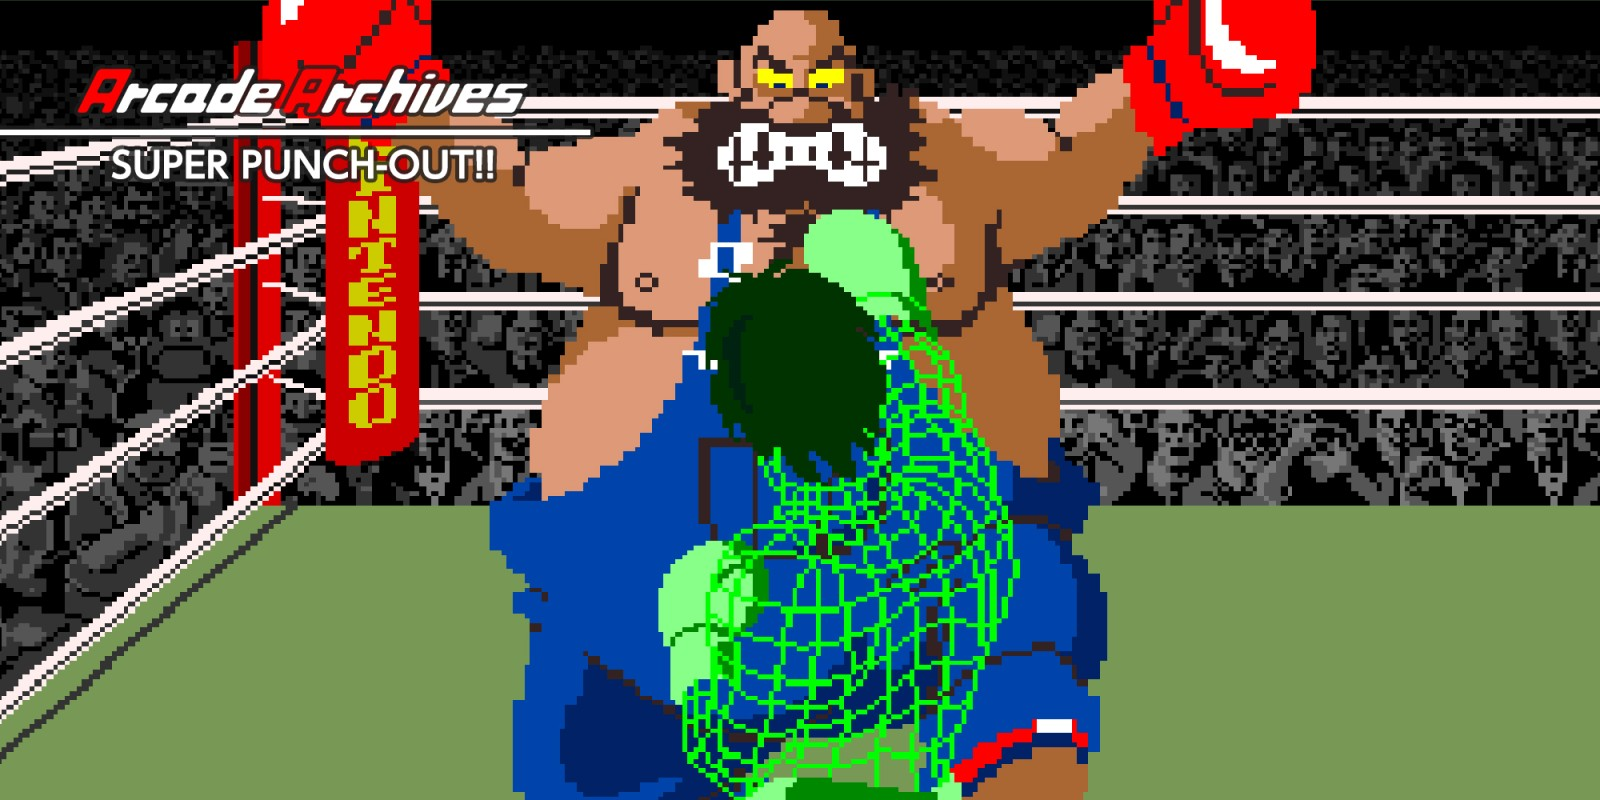 Arcade Archives SUPER PUNCH-OUT!!